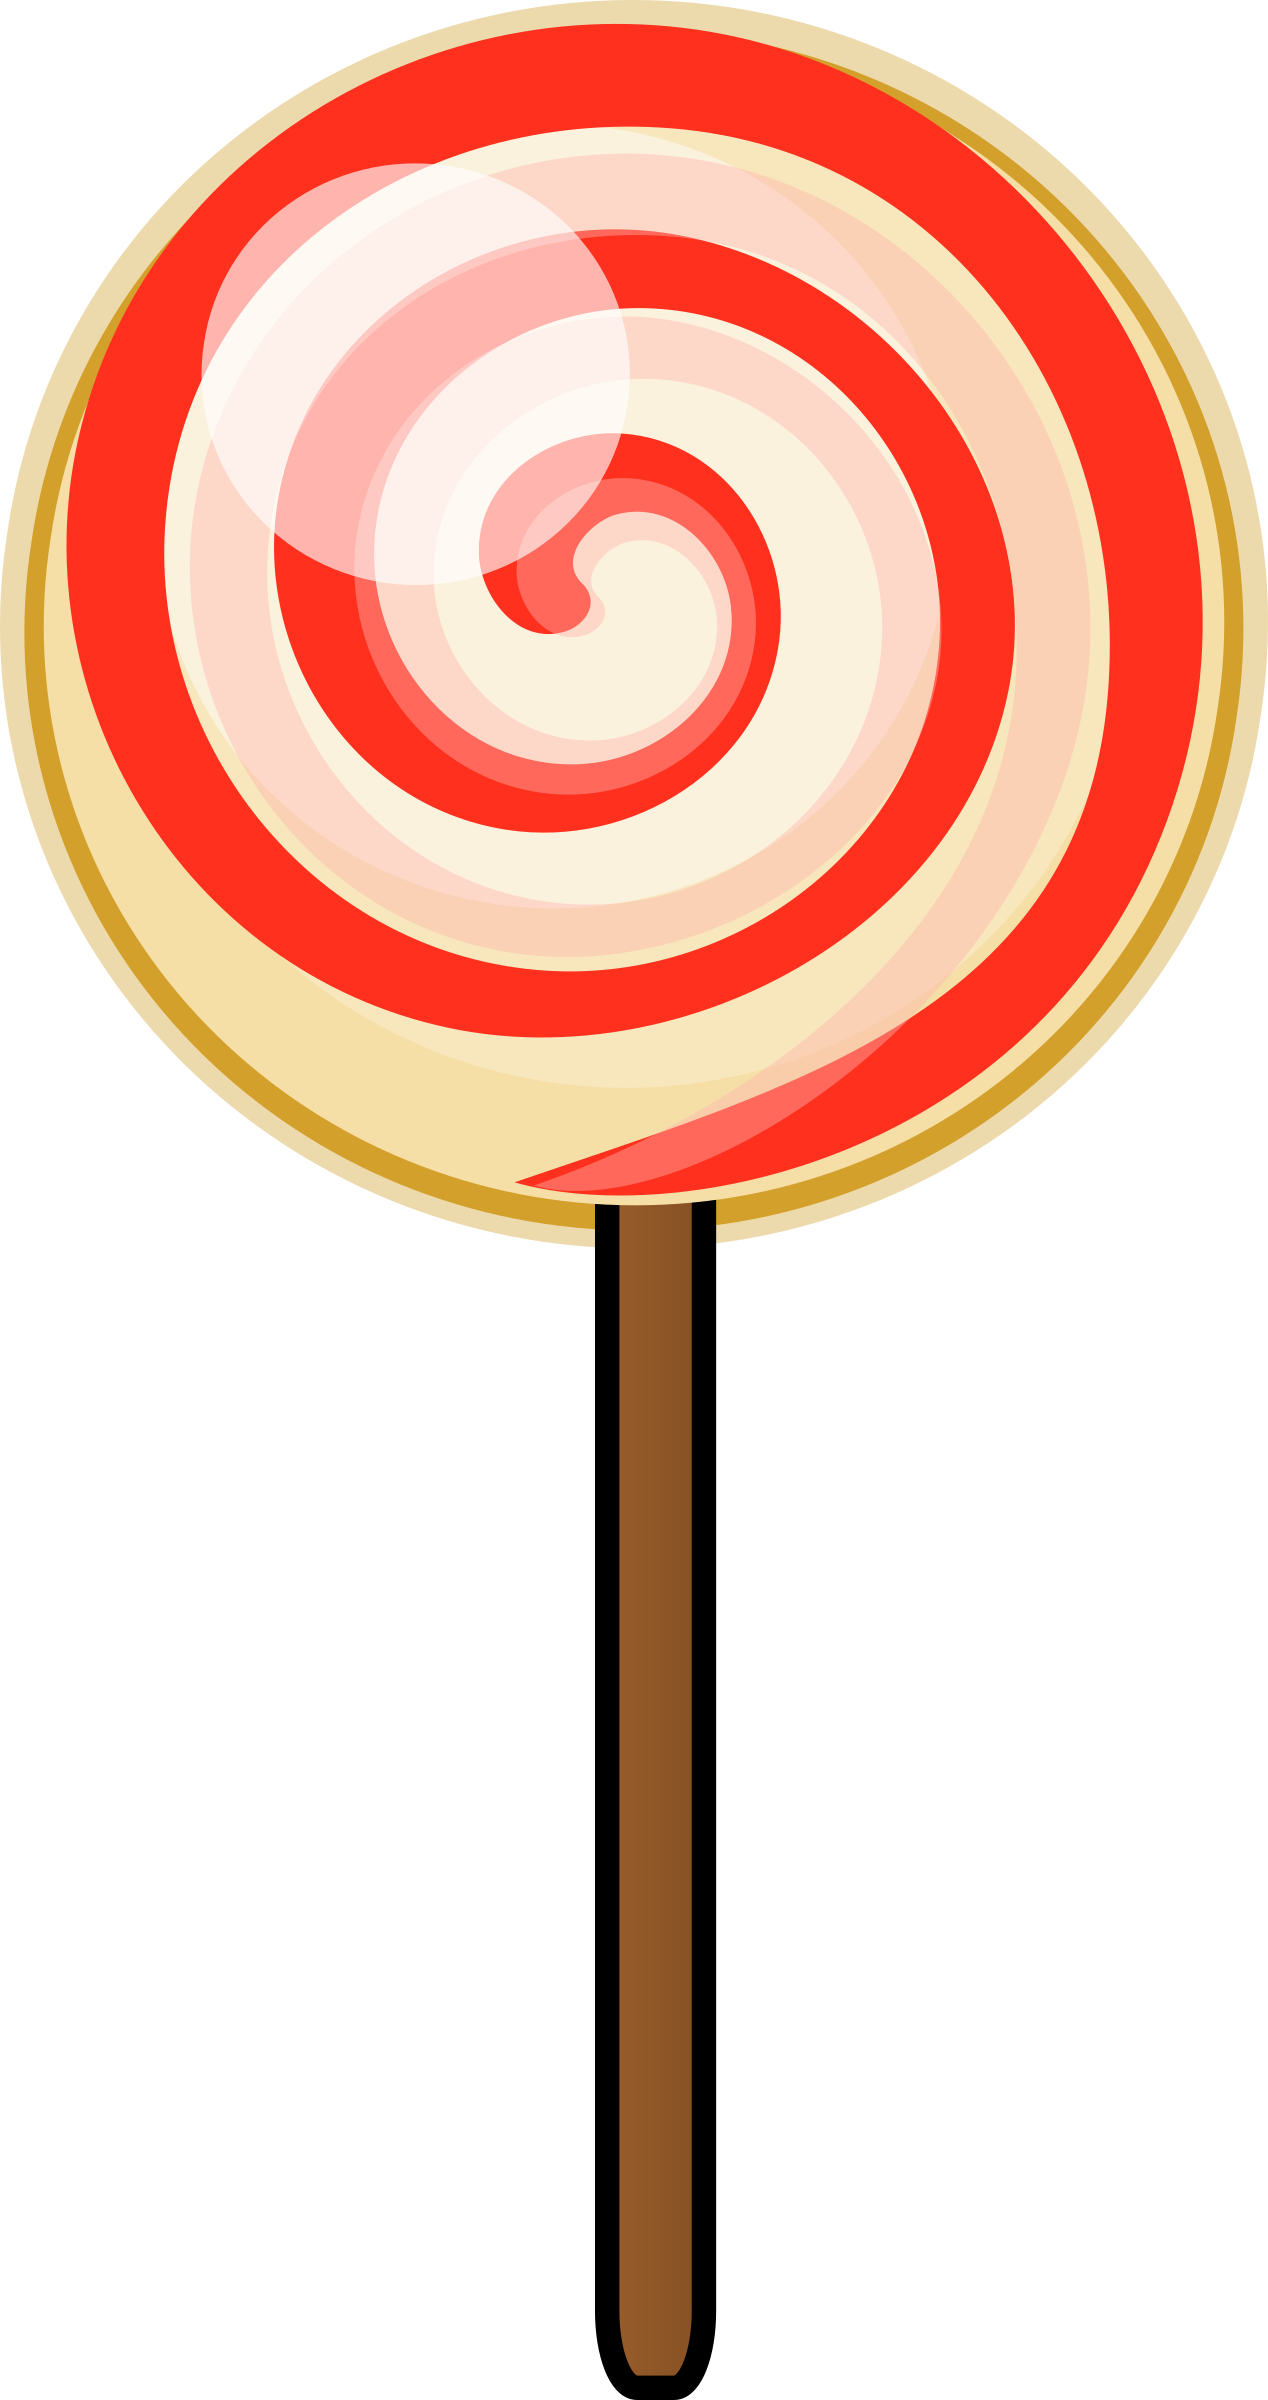 Lollipop by Magnesus